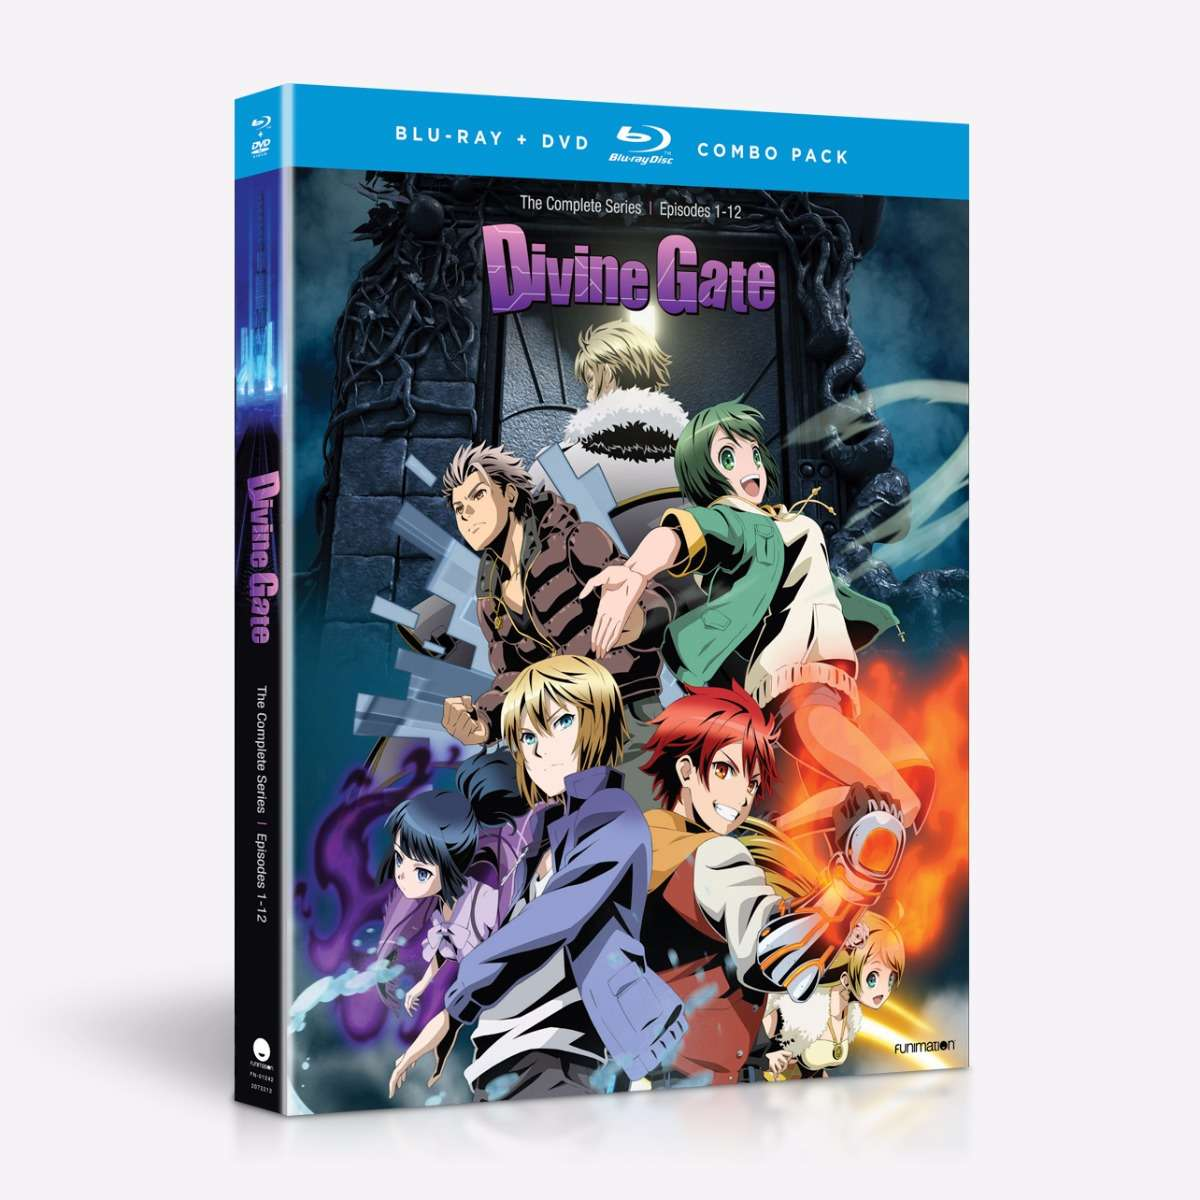 The Complete Series - BD/DVD Combo Home Video